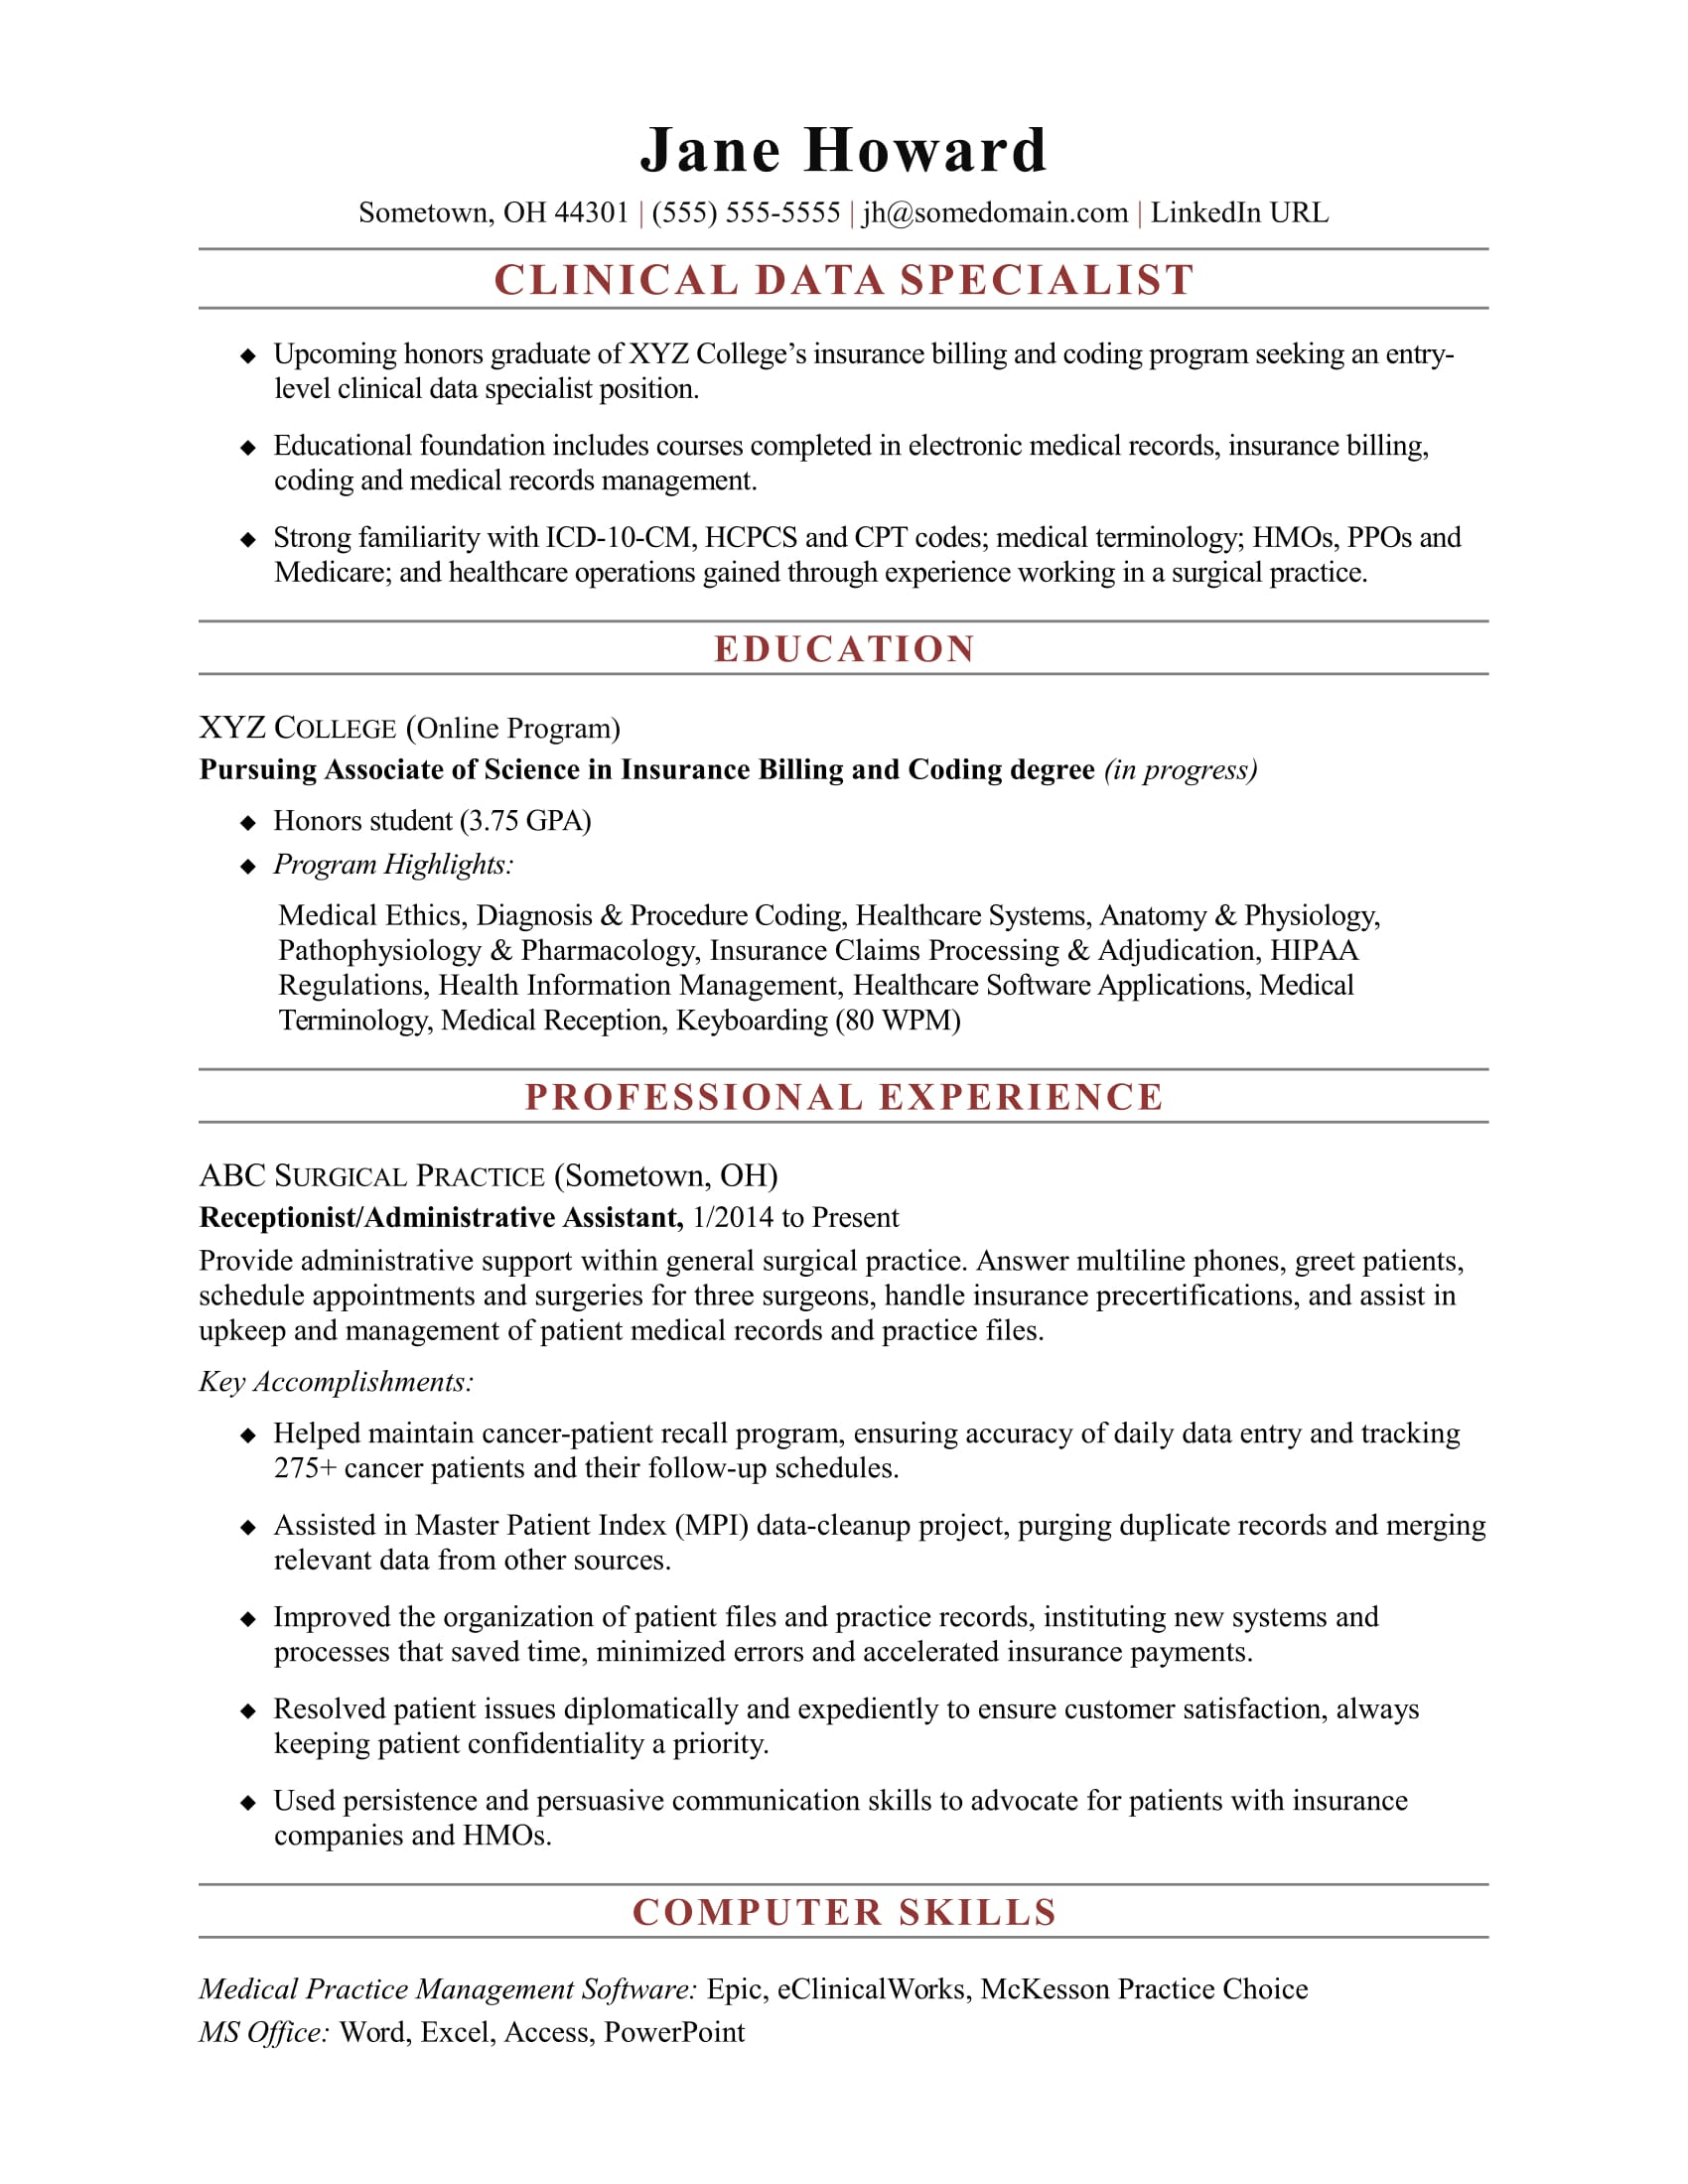 Entry Level Clinical Data Specialist Resume Sample Monster Com